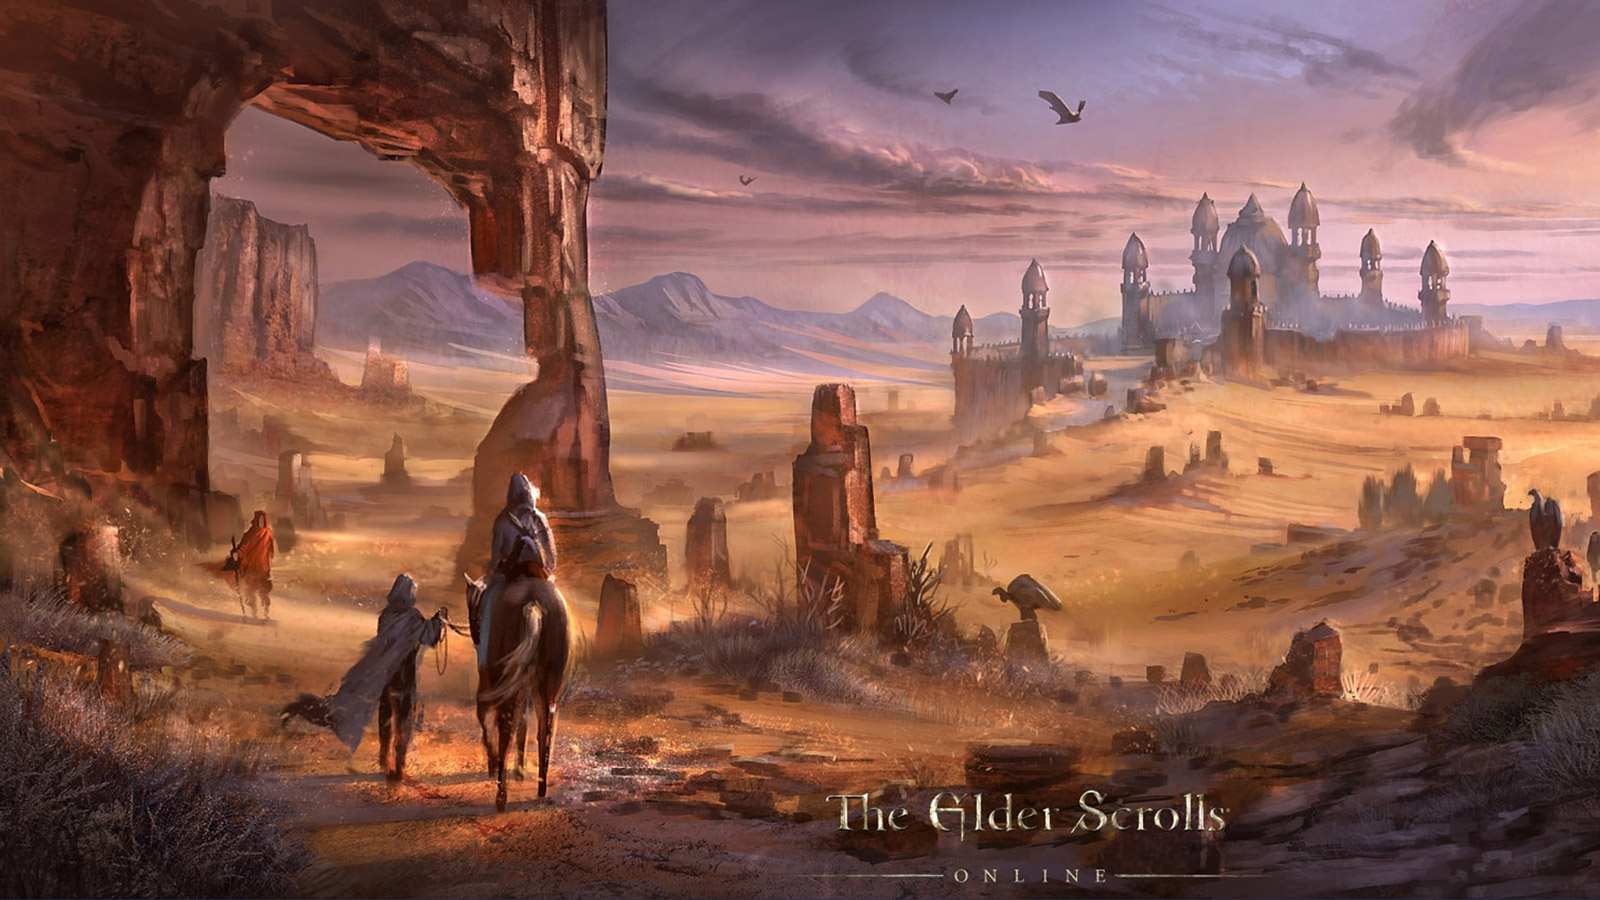 Free The Elder Scrolls Online Wallpaper in 1600x900